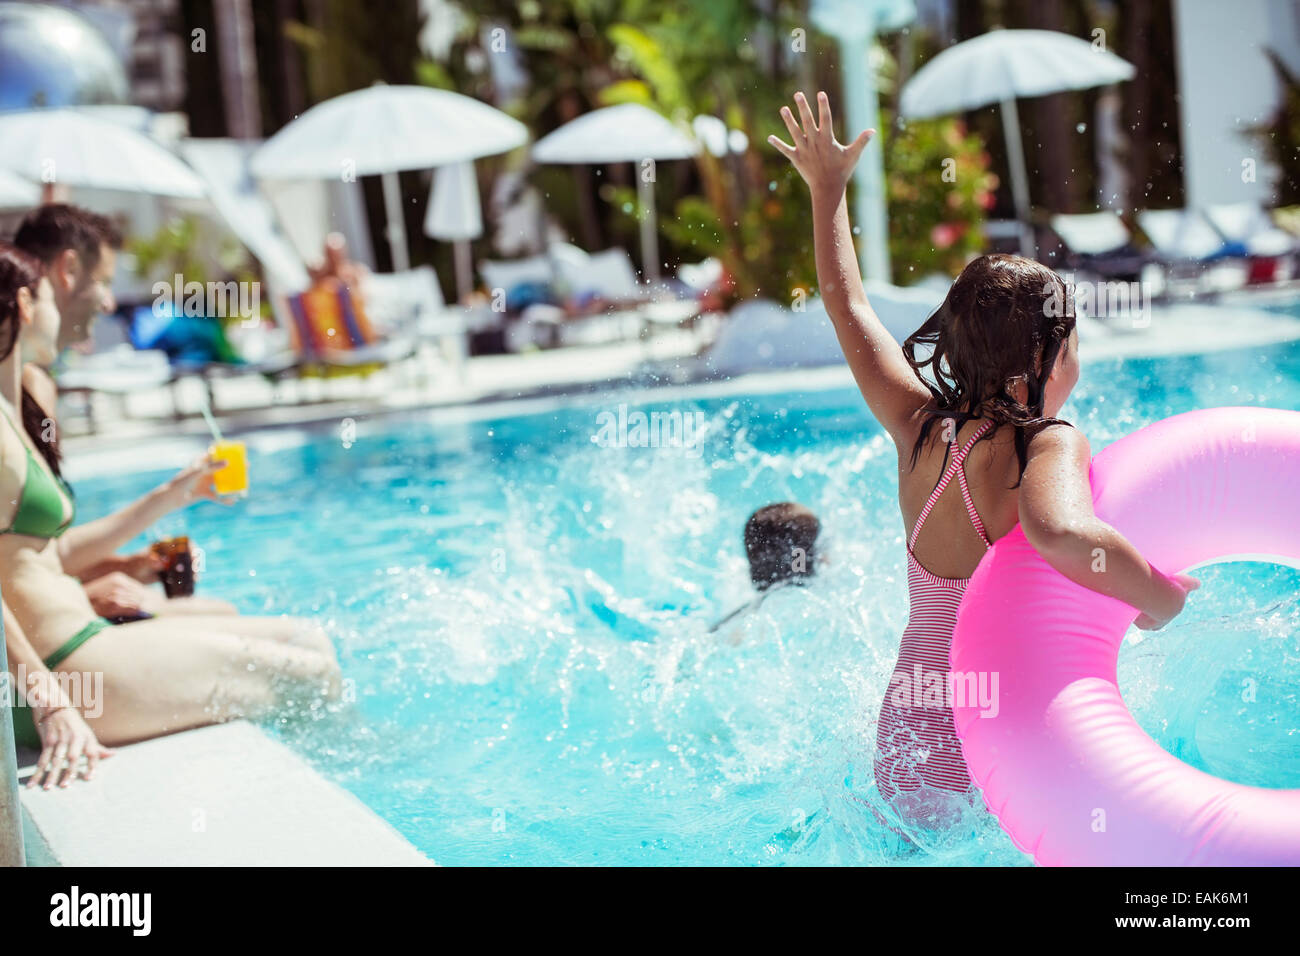 girl jumping into pool in summer stockfotos girl jumping into pool in summer bilder alamy. Black Bedroom Furniture Sets. Home Design Ideas